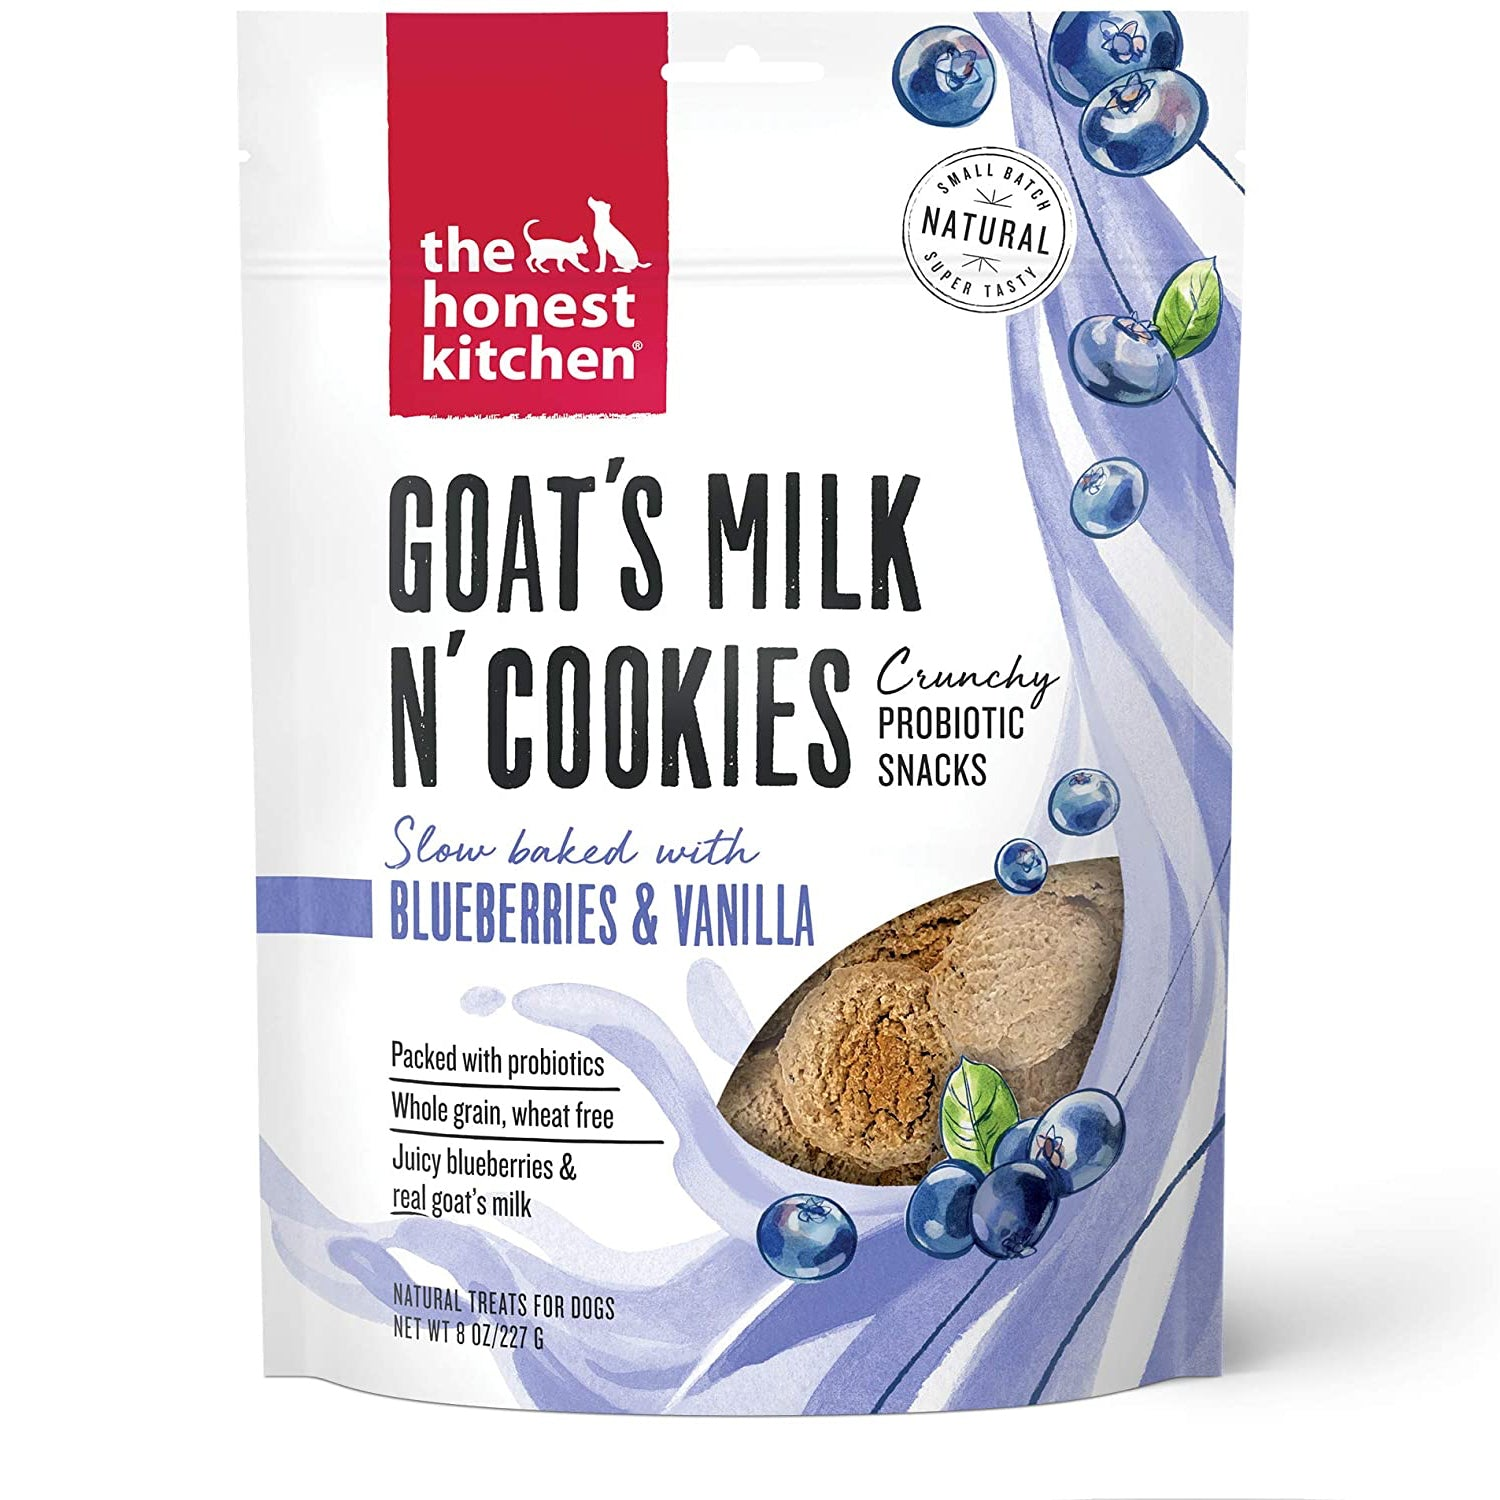 The Honest Kitchen Crunchy Goat's Milk n' Cookies Probiotic Dog Treats - Slow Baked With Blueberries & Vanilla